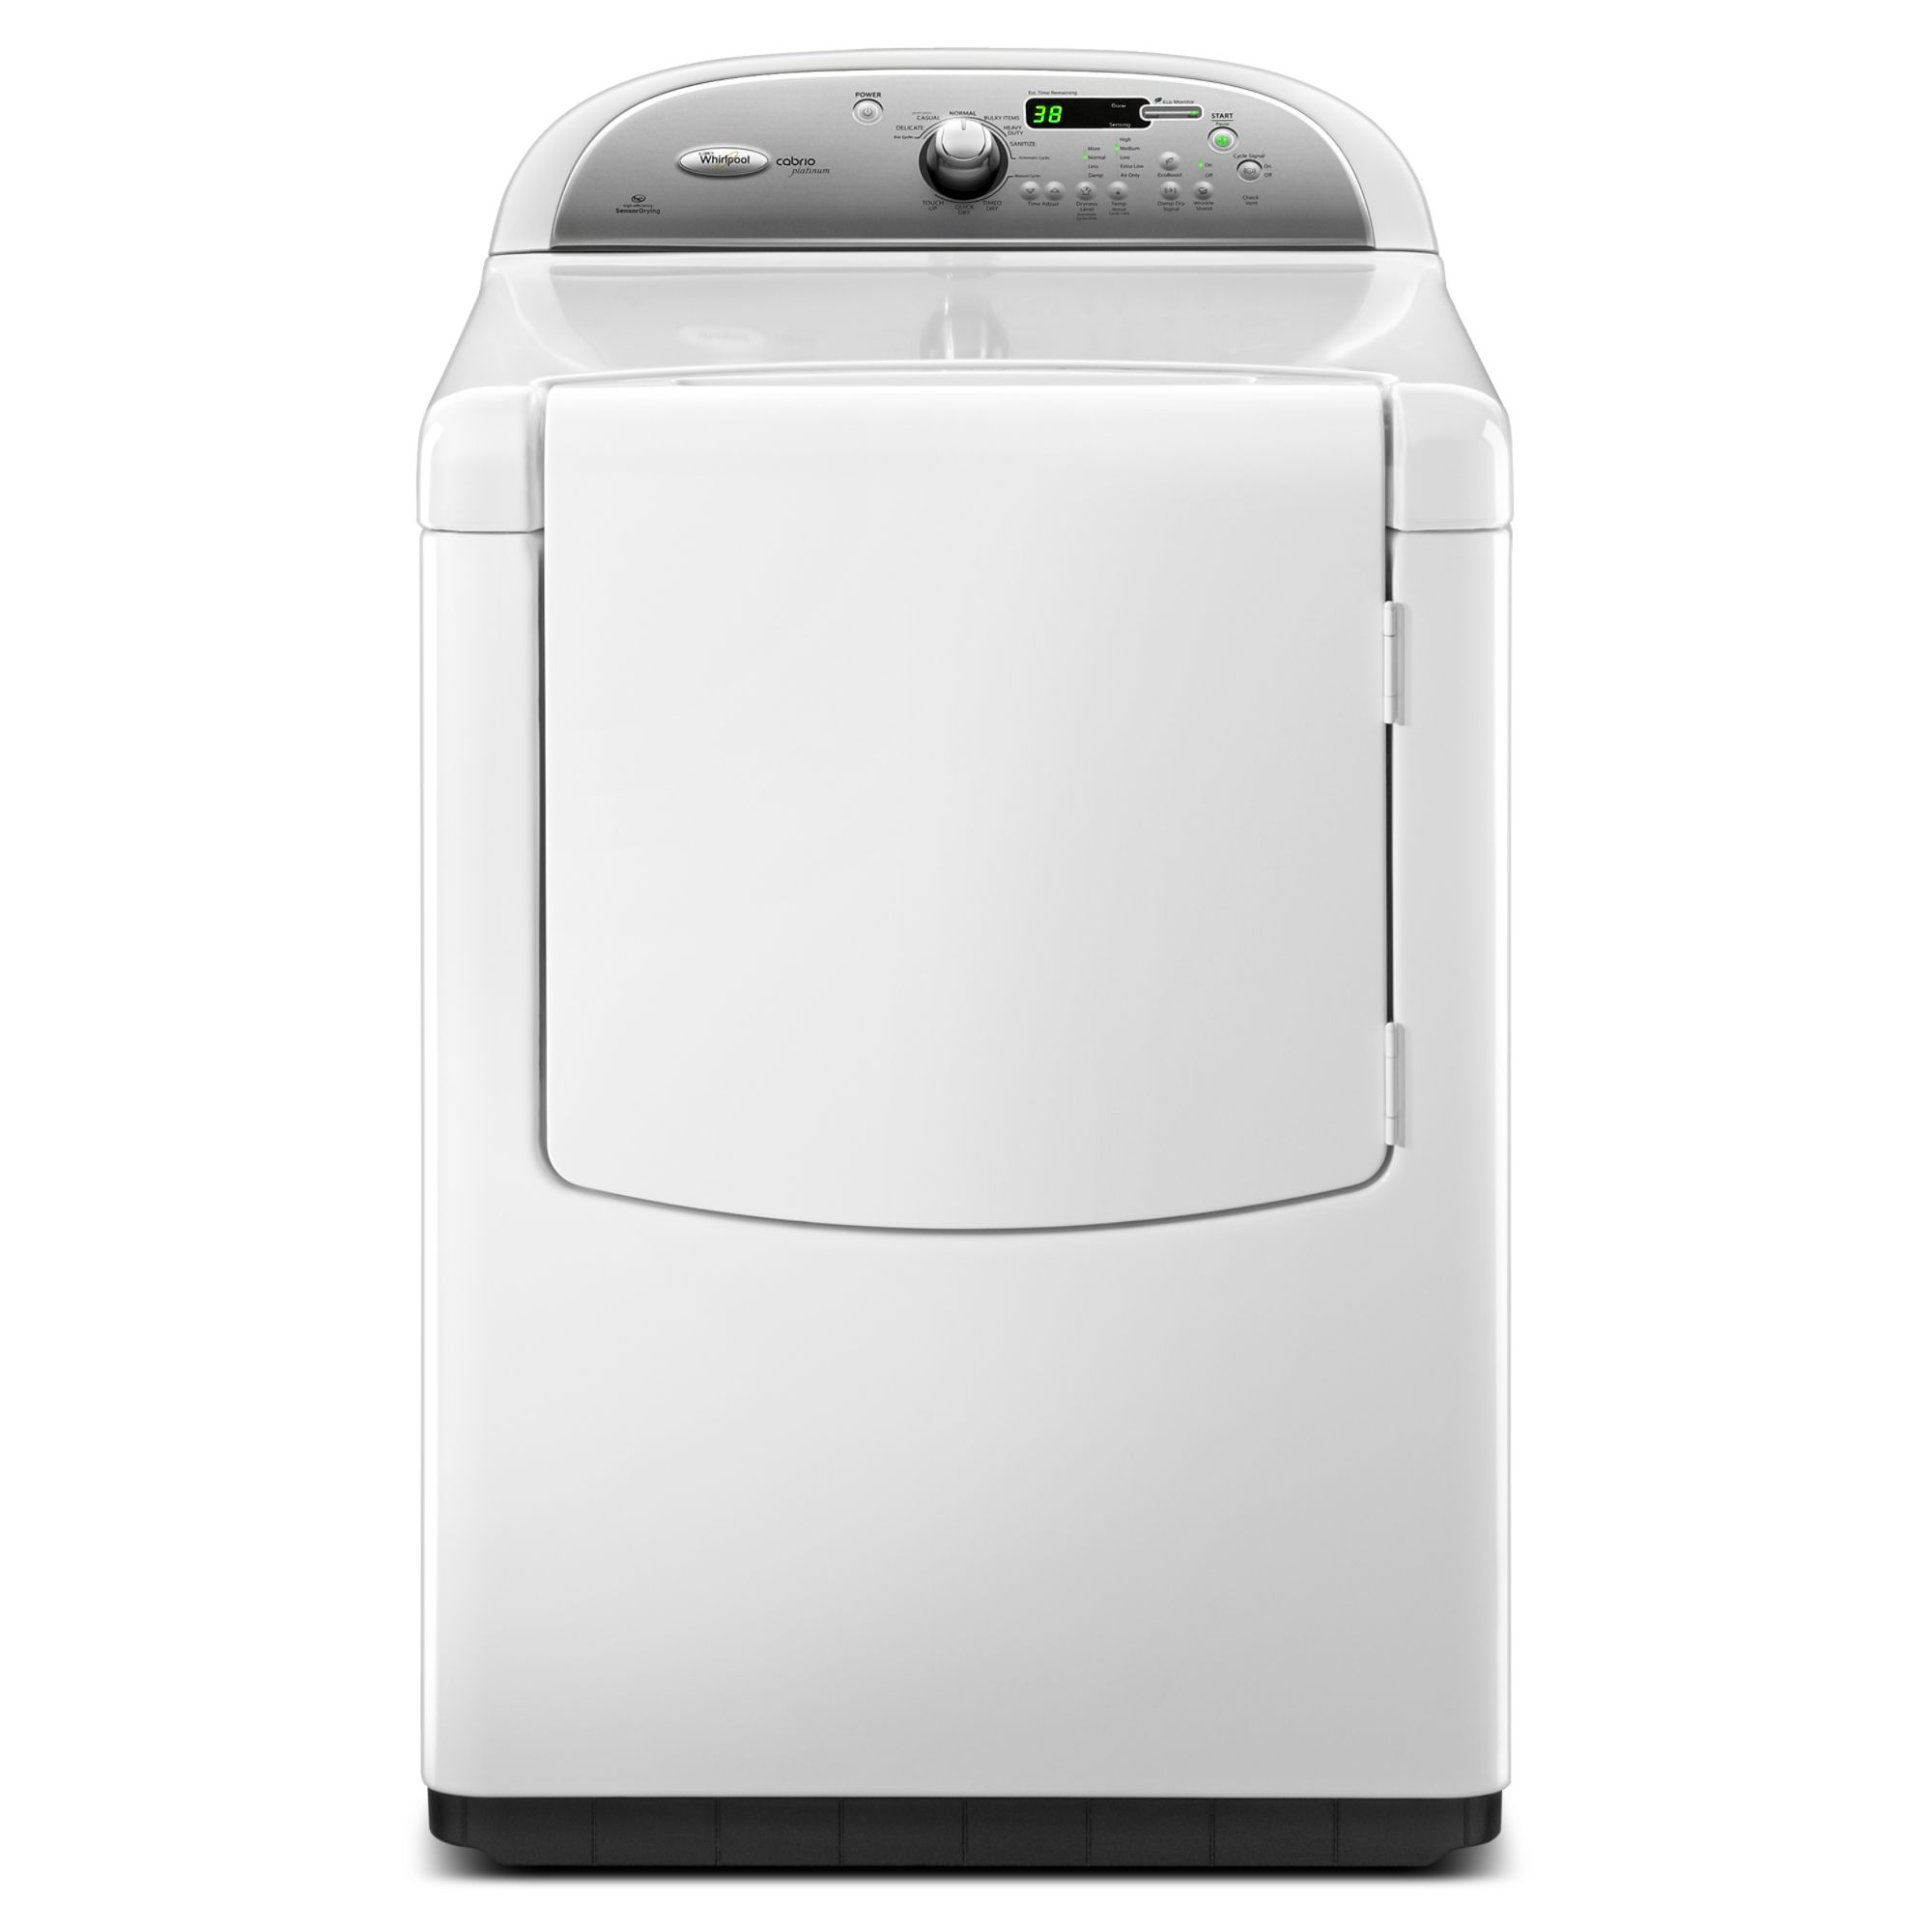 7.6 cu. ft. Electric Dryer, White